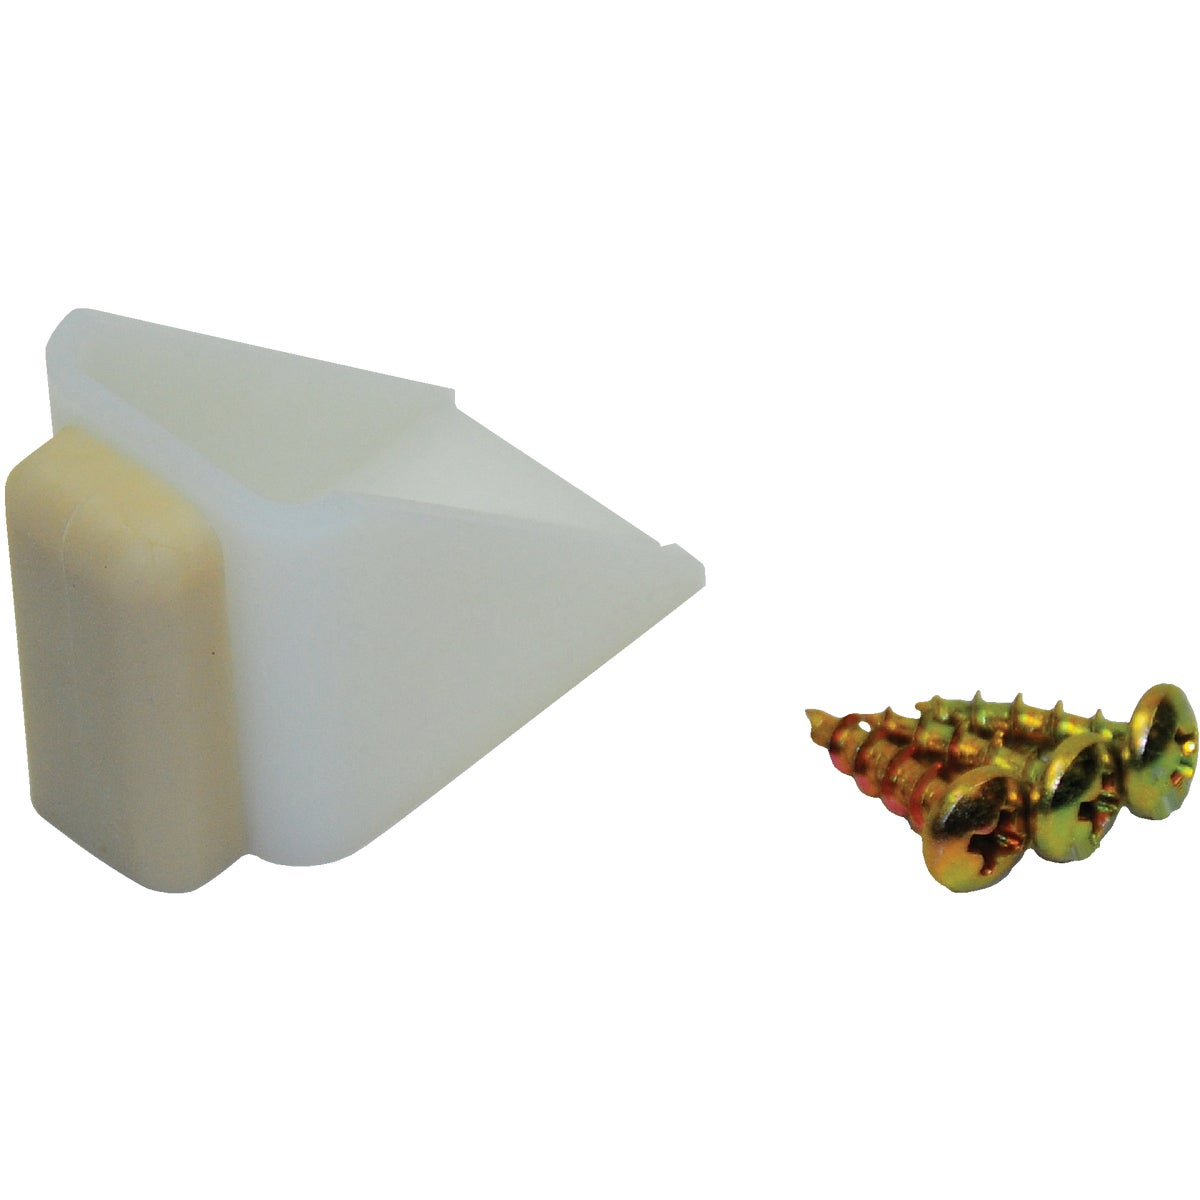 NYLON DOOR STOP - 2155PPK1 by Johnson Products